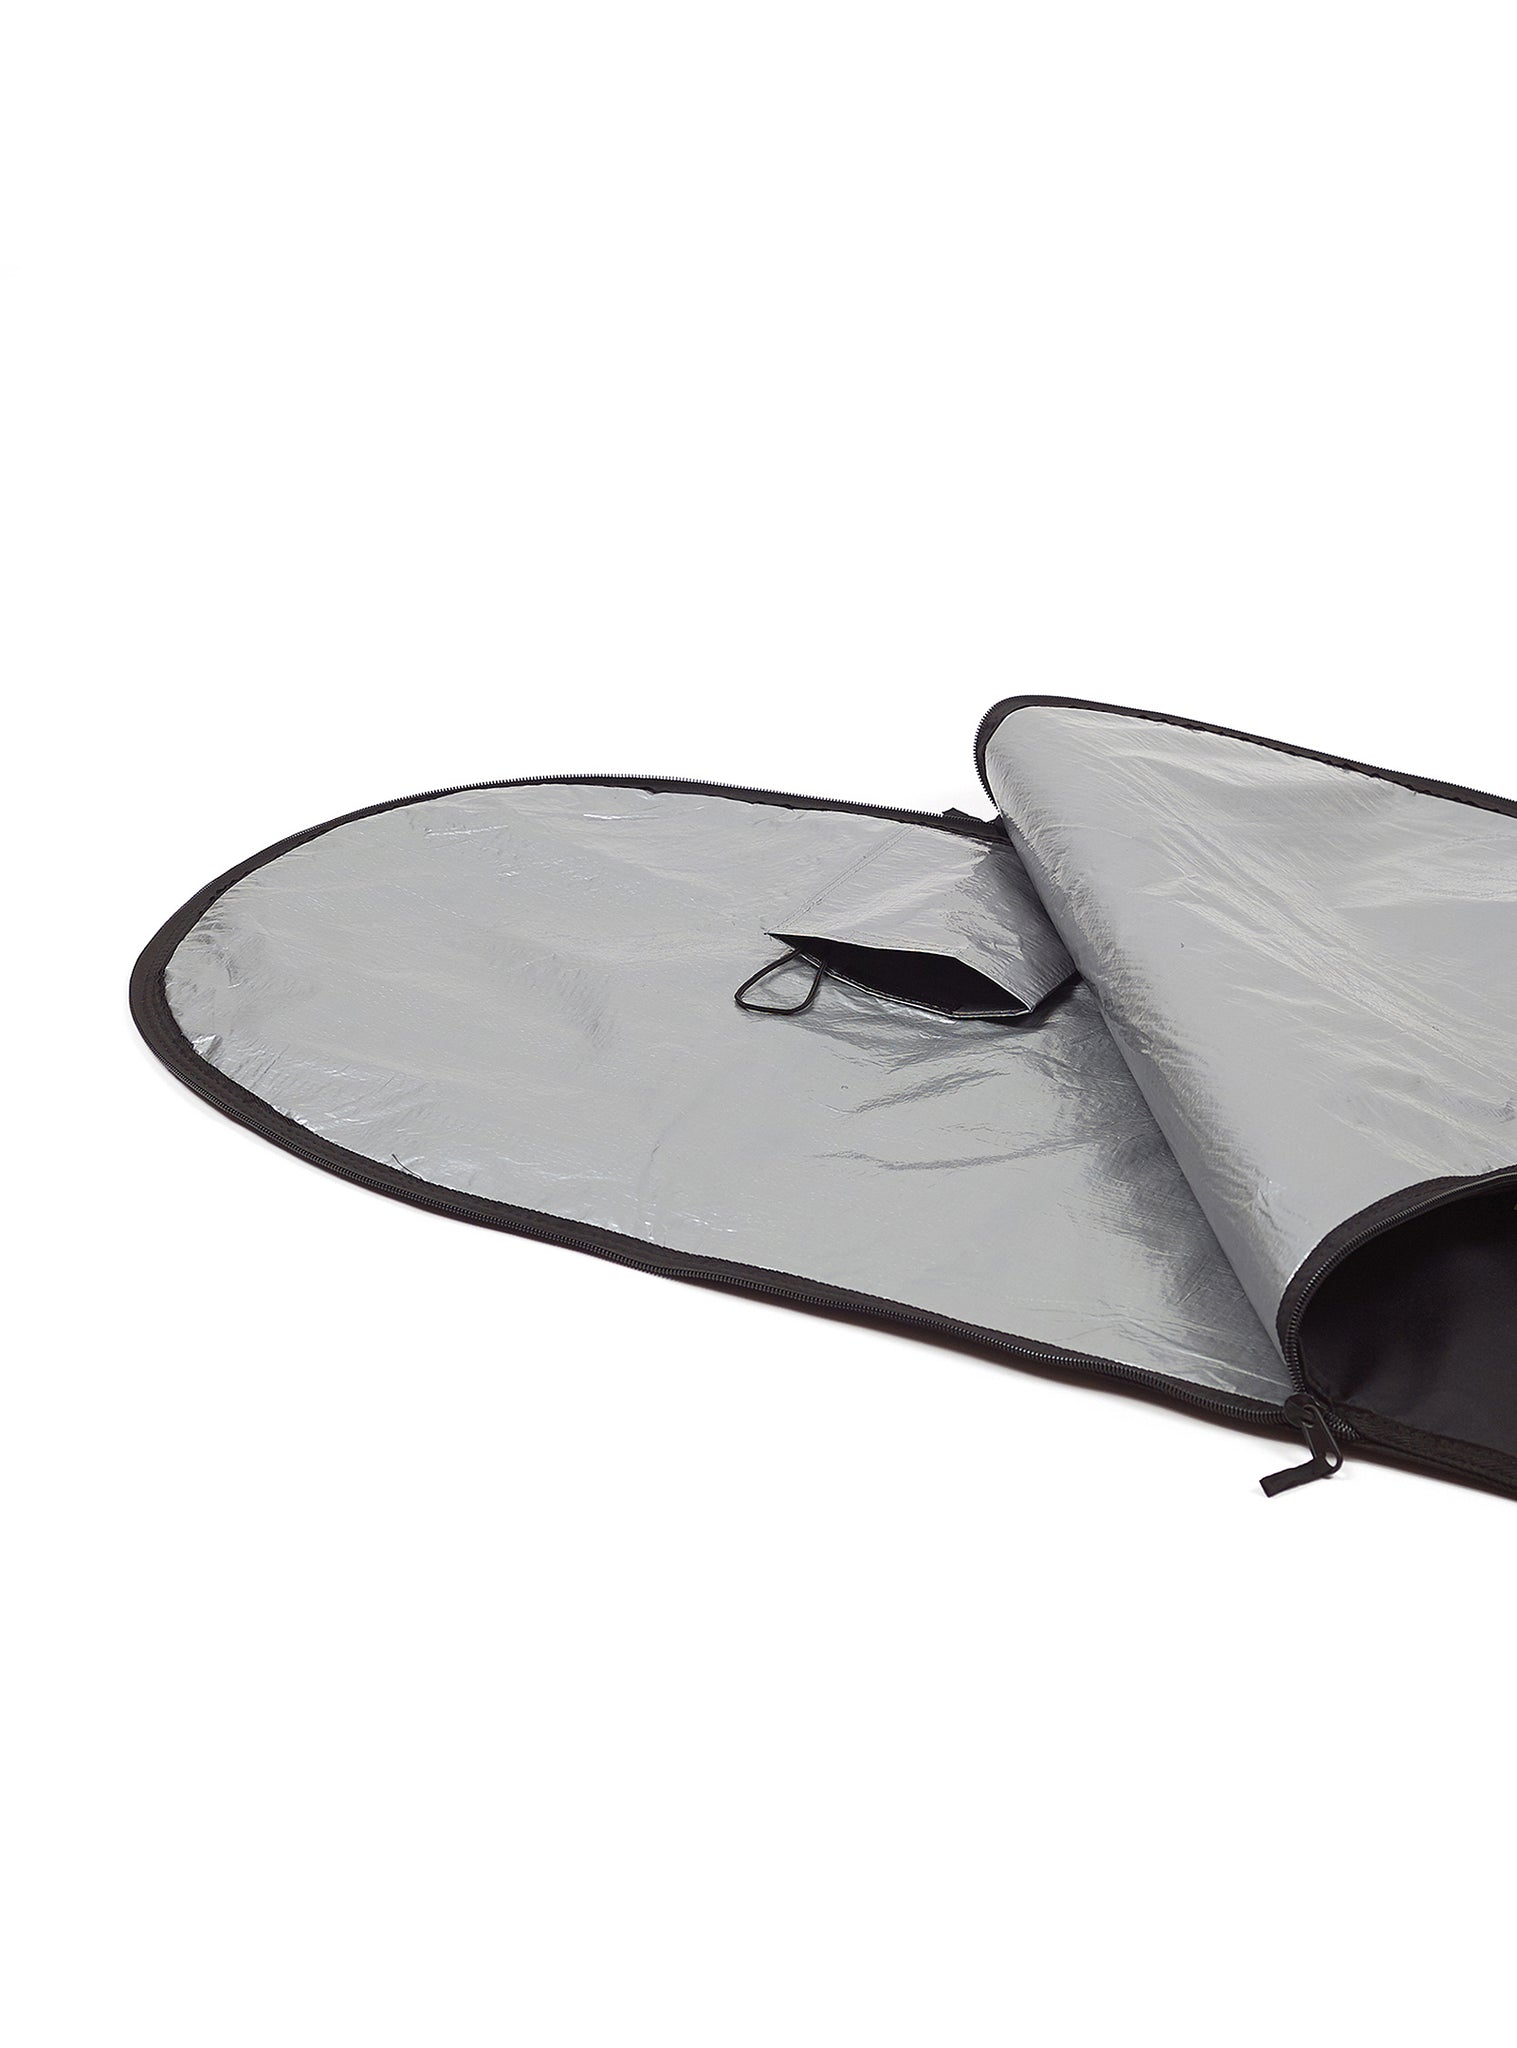 Travel Bag 6.3 Ft Saco De Surf Sem Cor